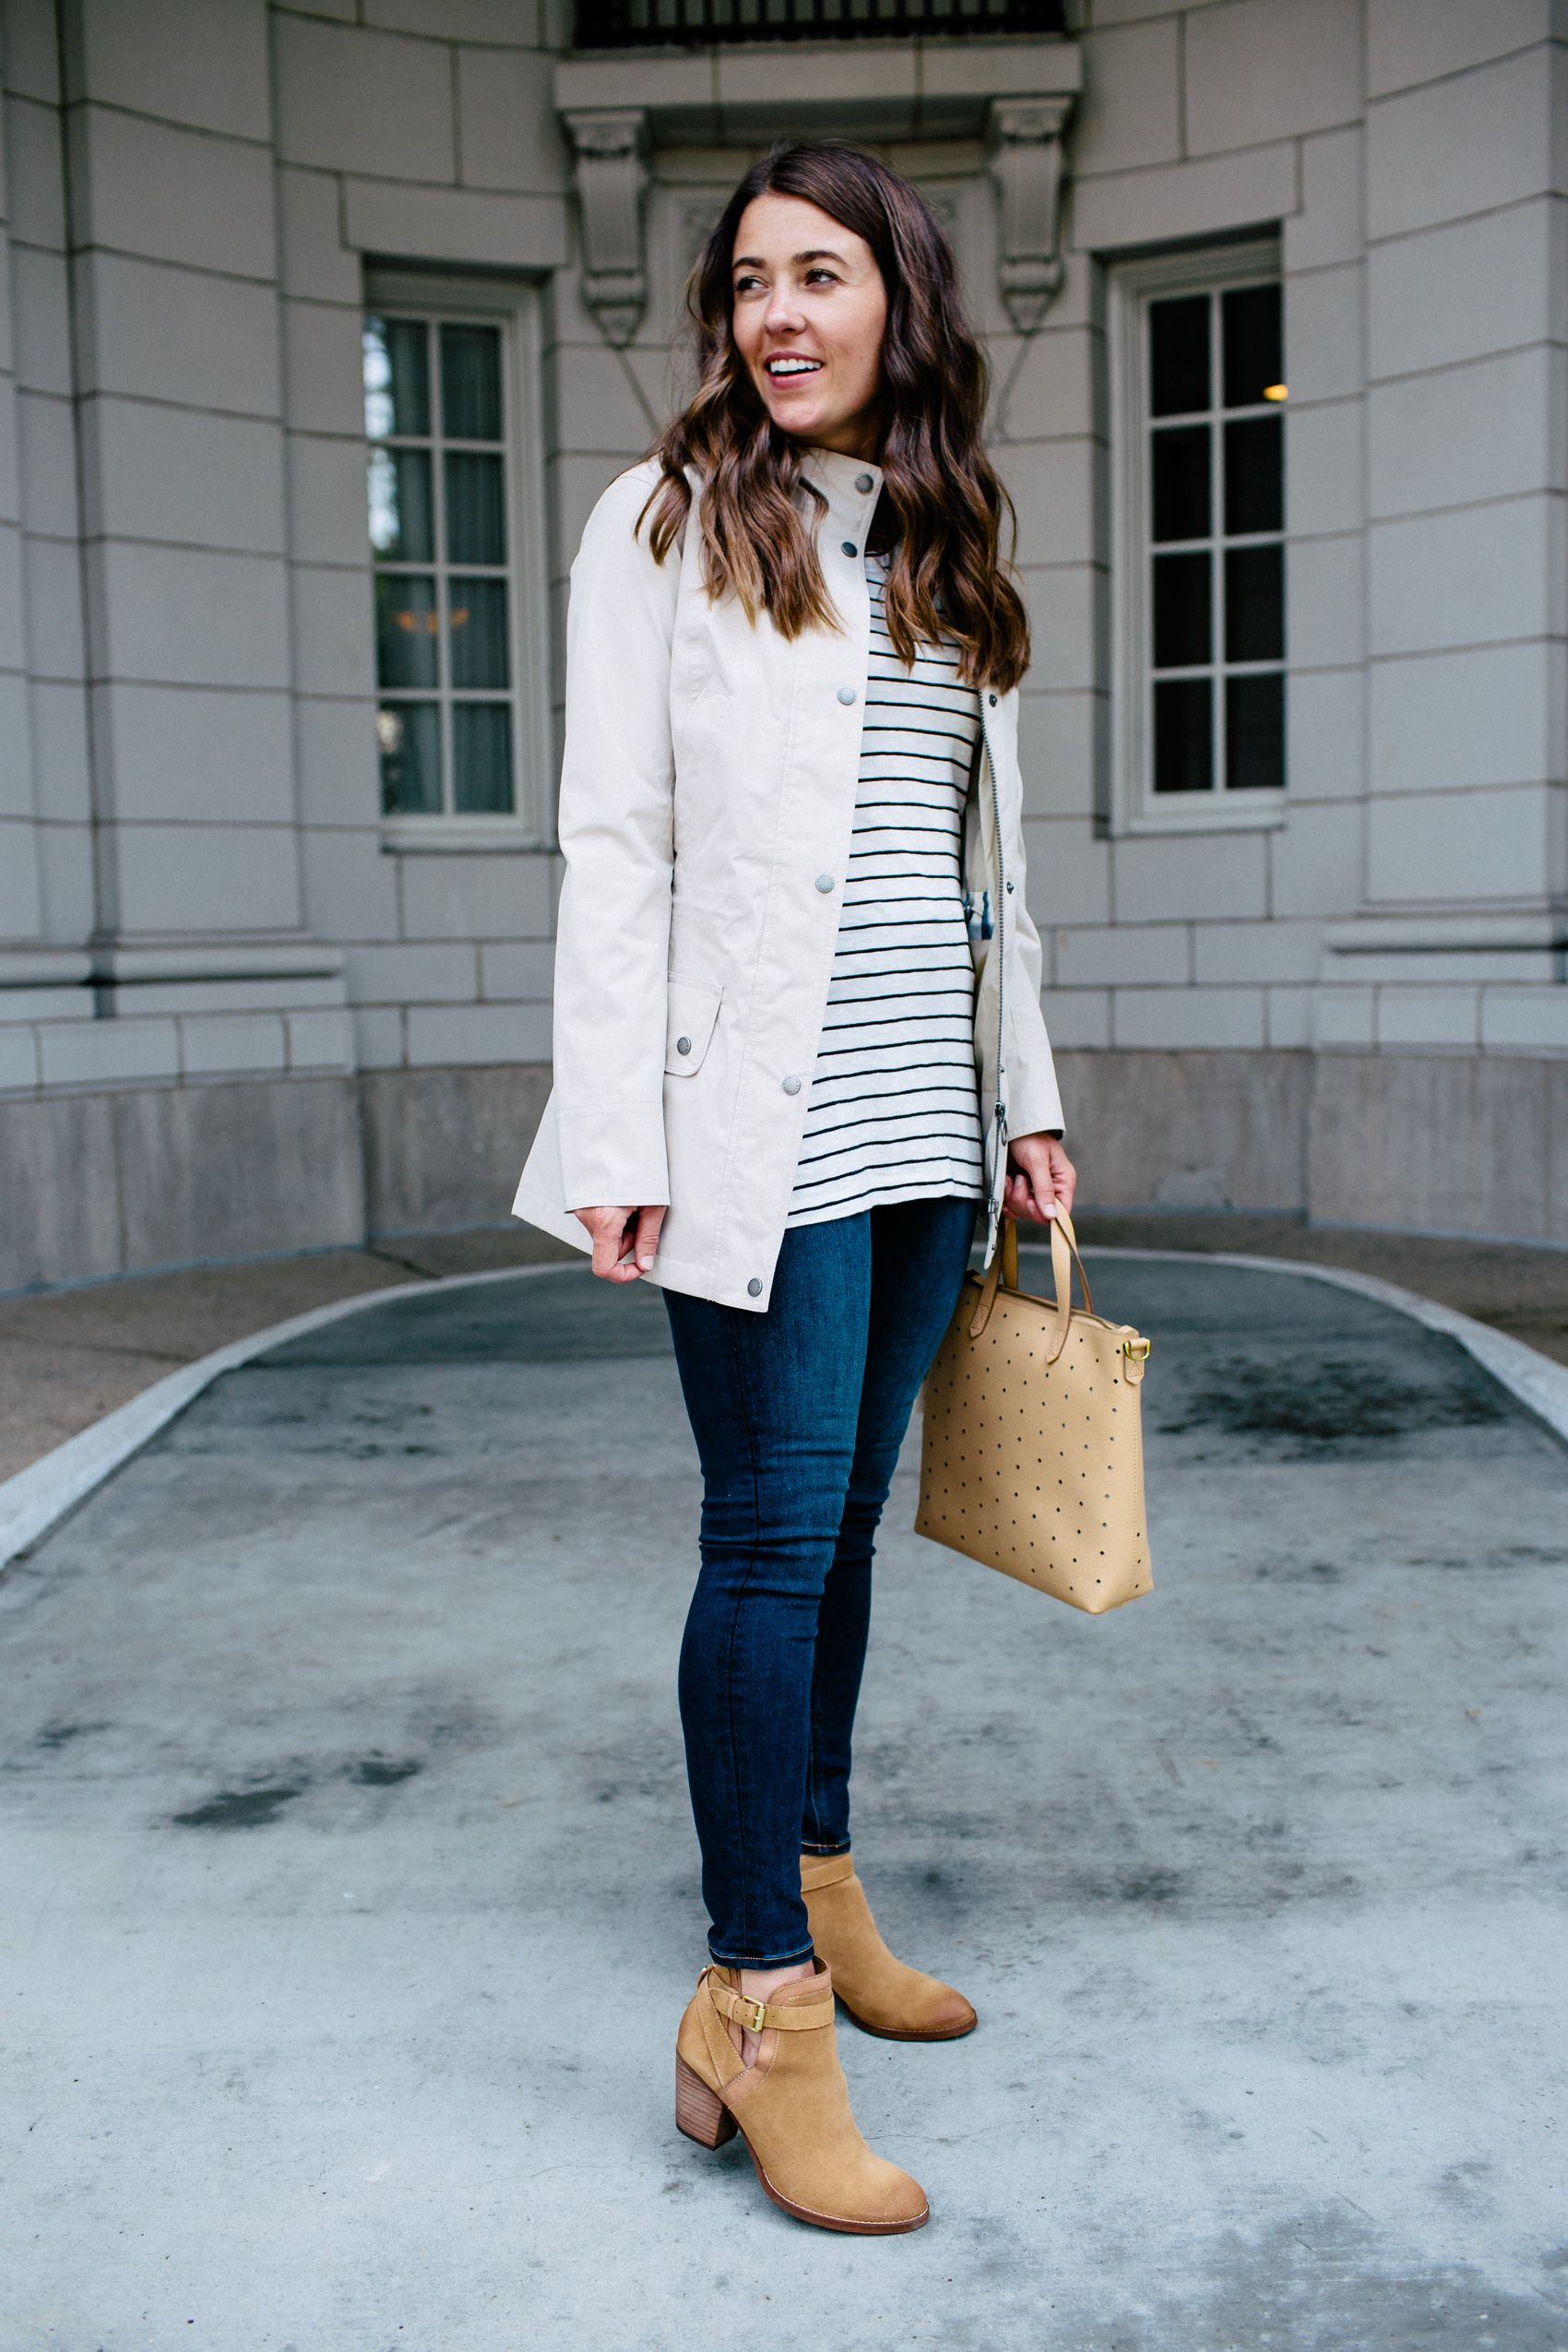 b95a6672fa5a 6 Outfits You Need from the 2018 Nordstrom Anniversary Sale A Giveaway!